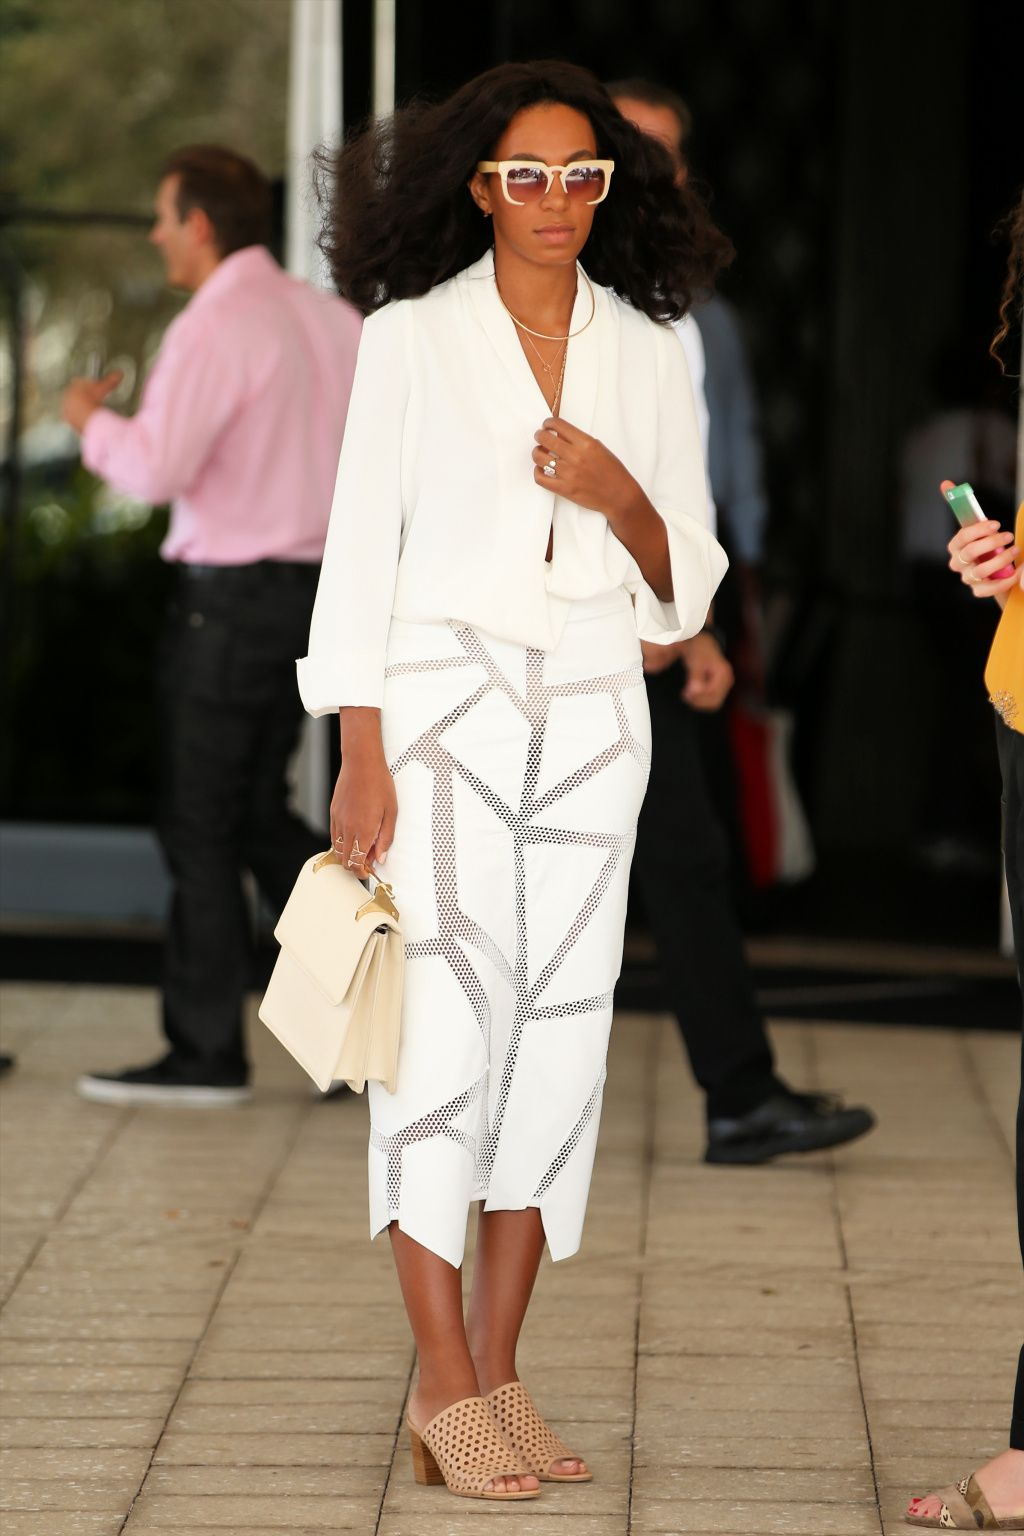 Love It Florida Style: ART BASEL: Solange In All White, Cassie & Diddy Coupled Up